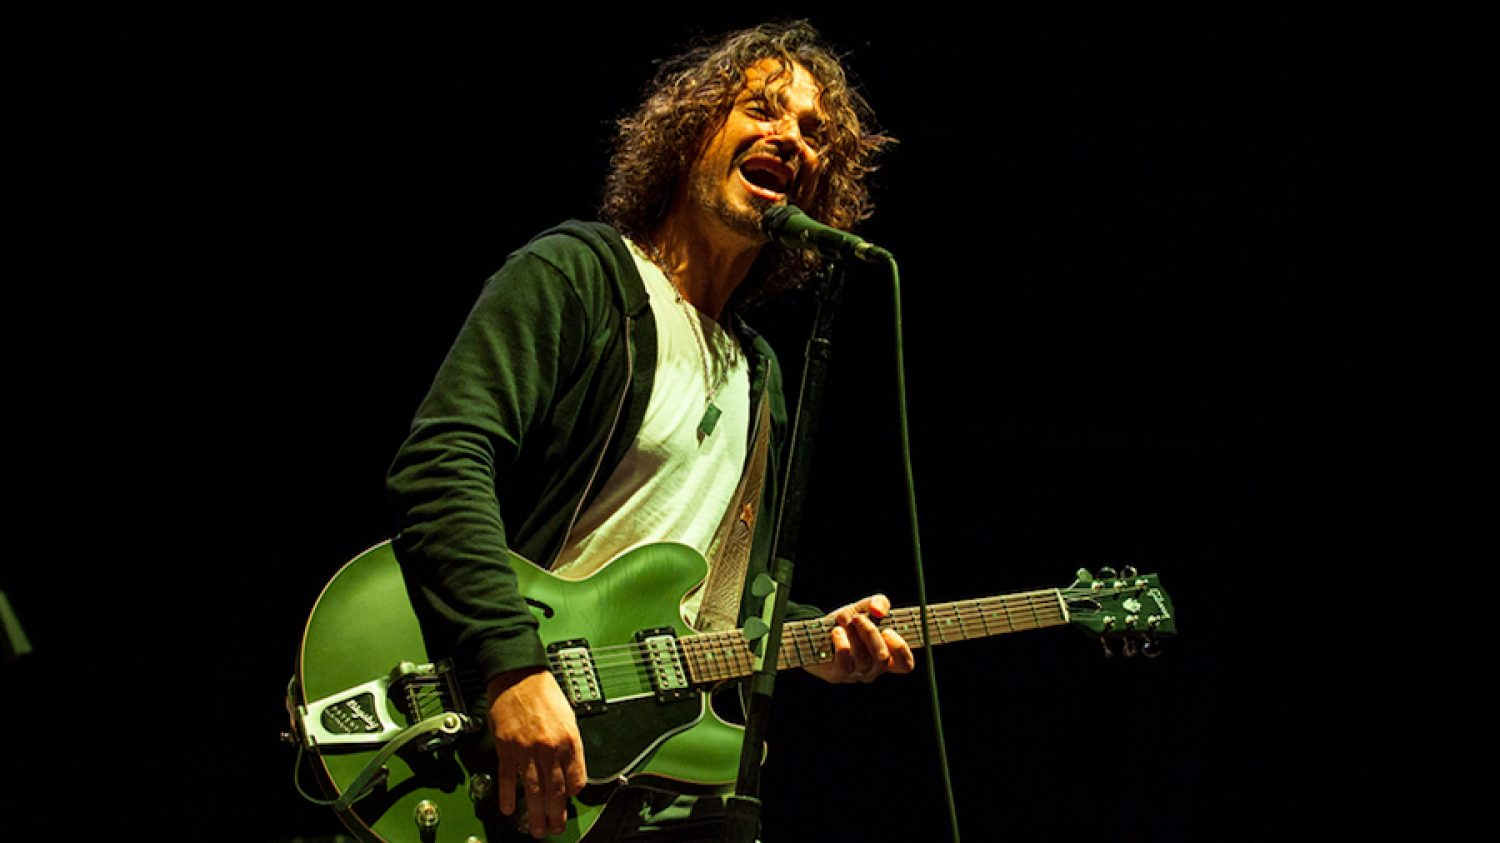 Chris Cornell Signature E-335